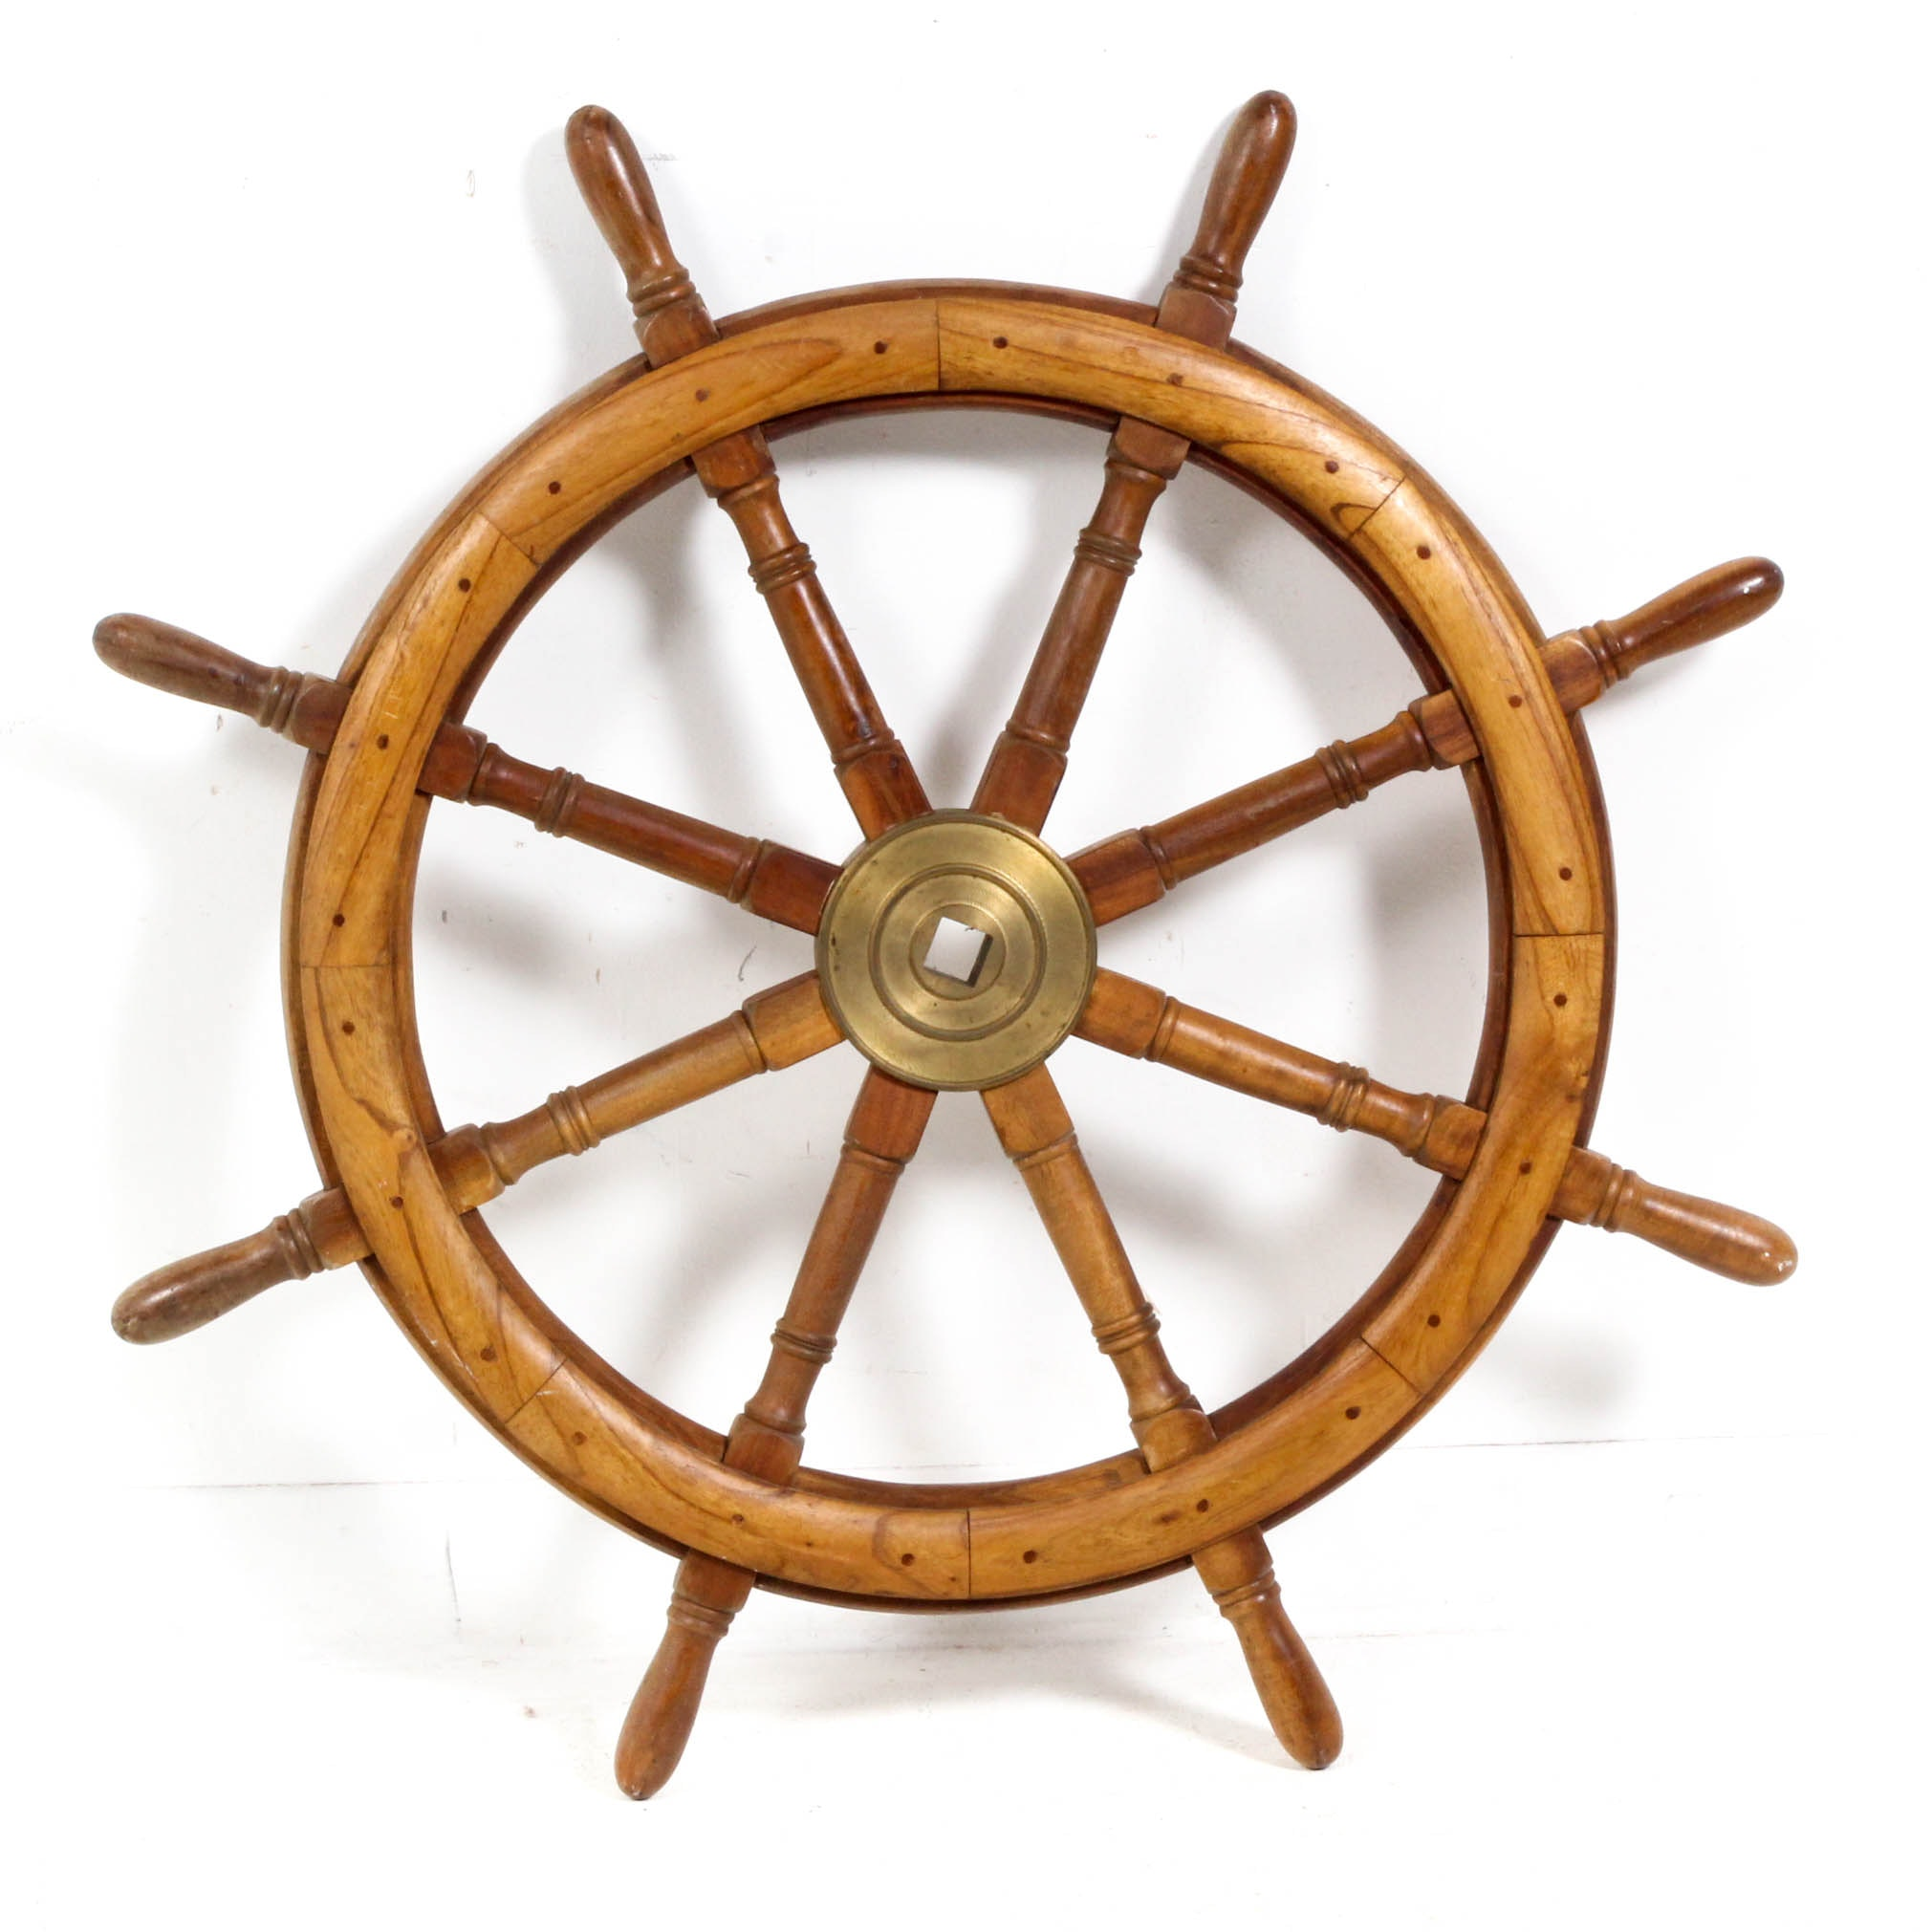 Decorative Wooden Ship's Wheel